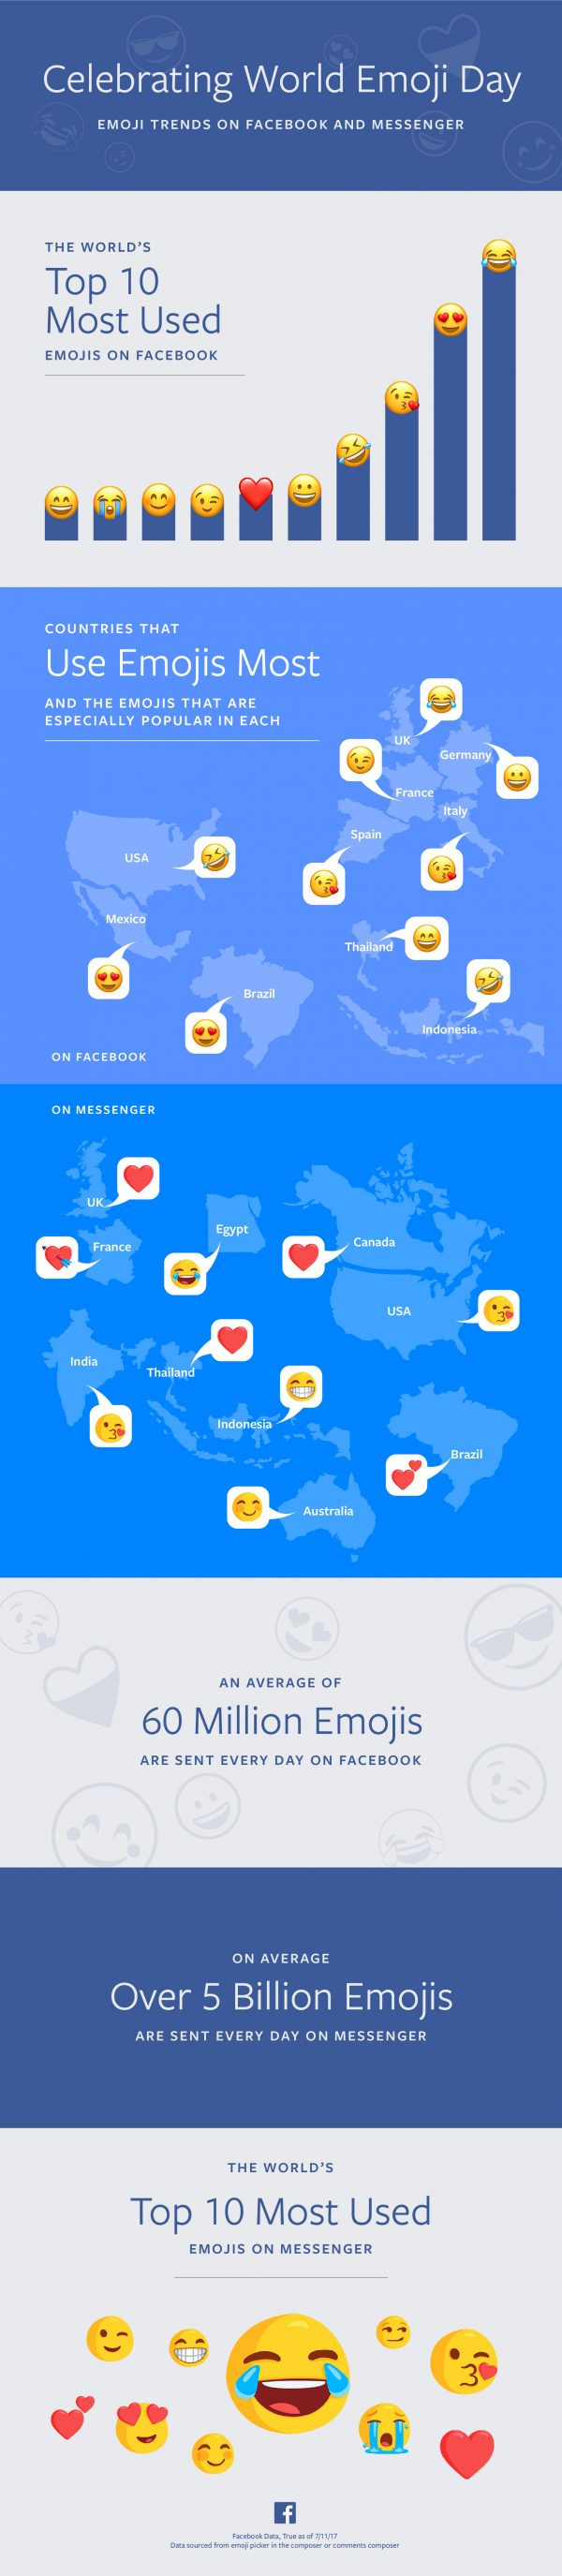 World Emoji Day Infographic (Quelle: Facebook)